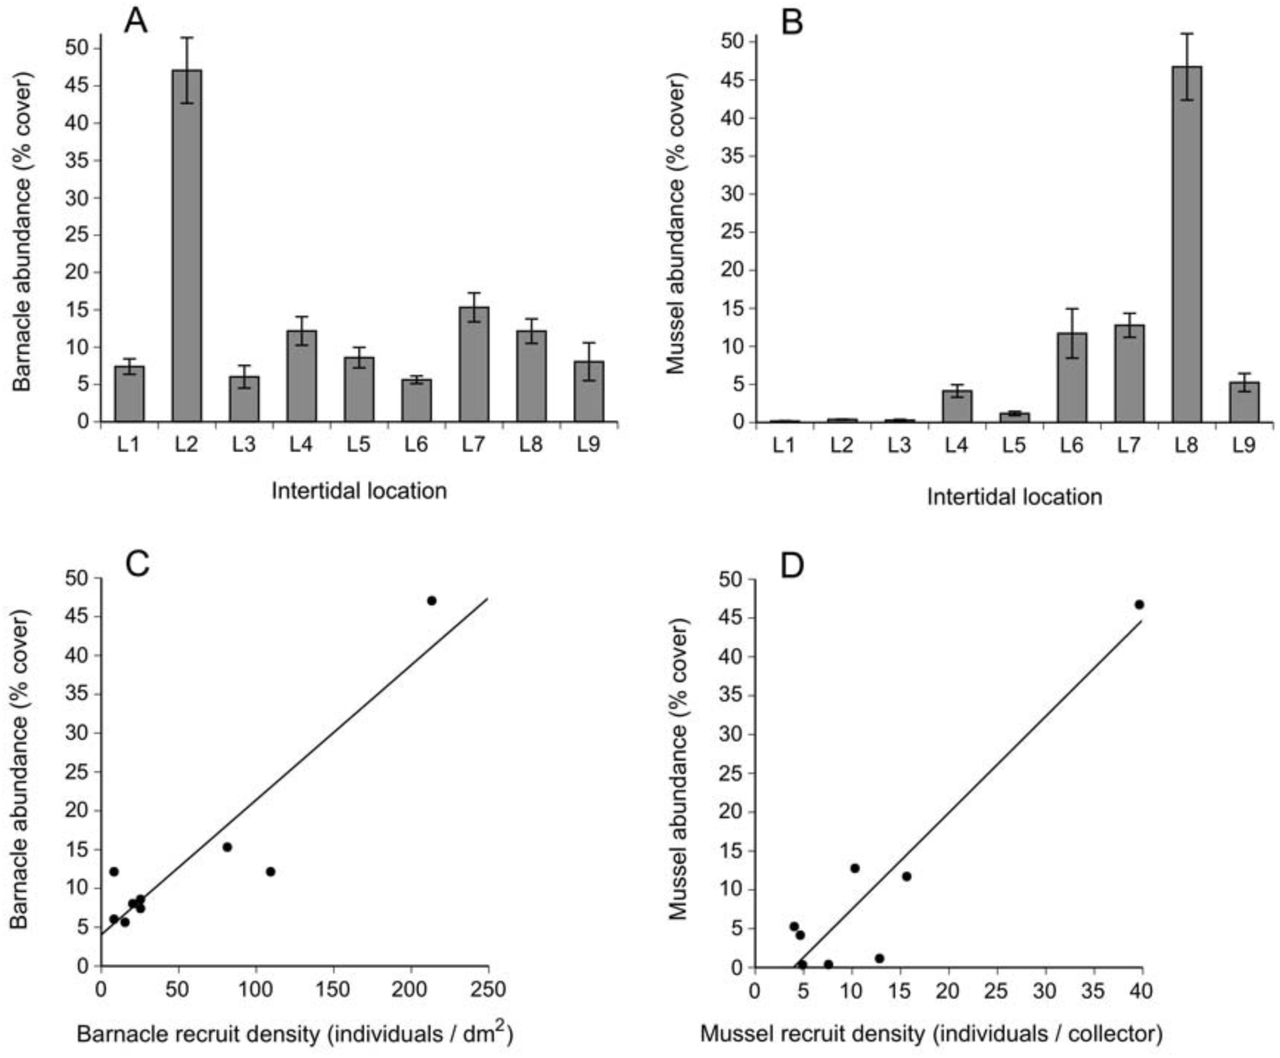 Recruitment and abundance of intertidal barnacles and